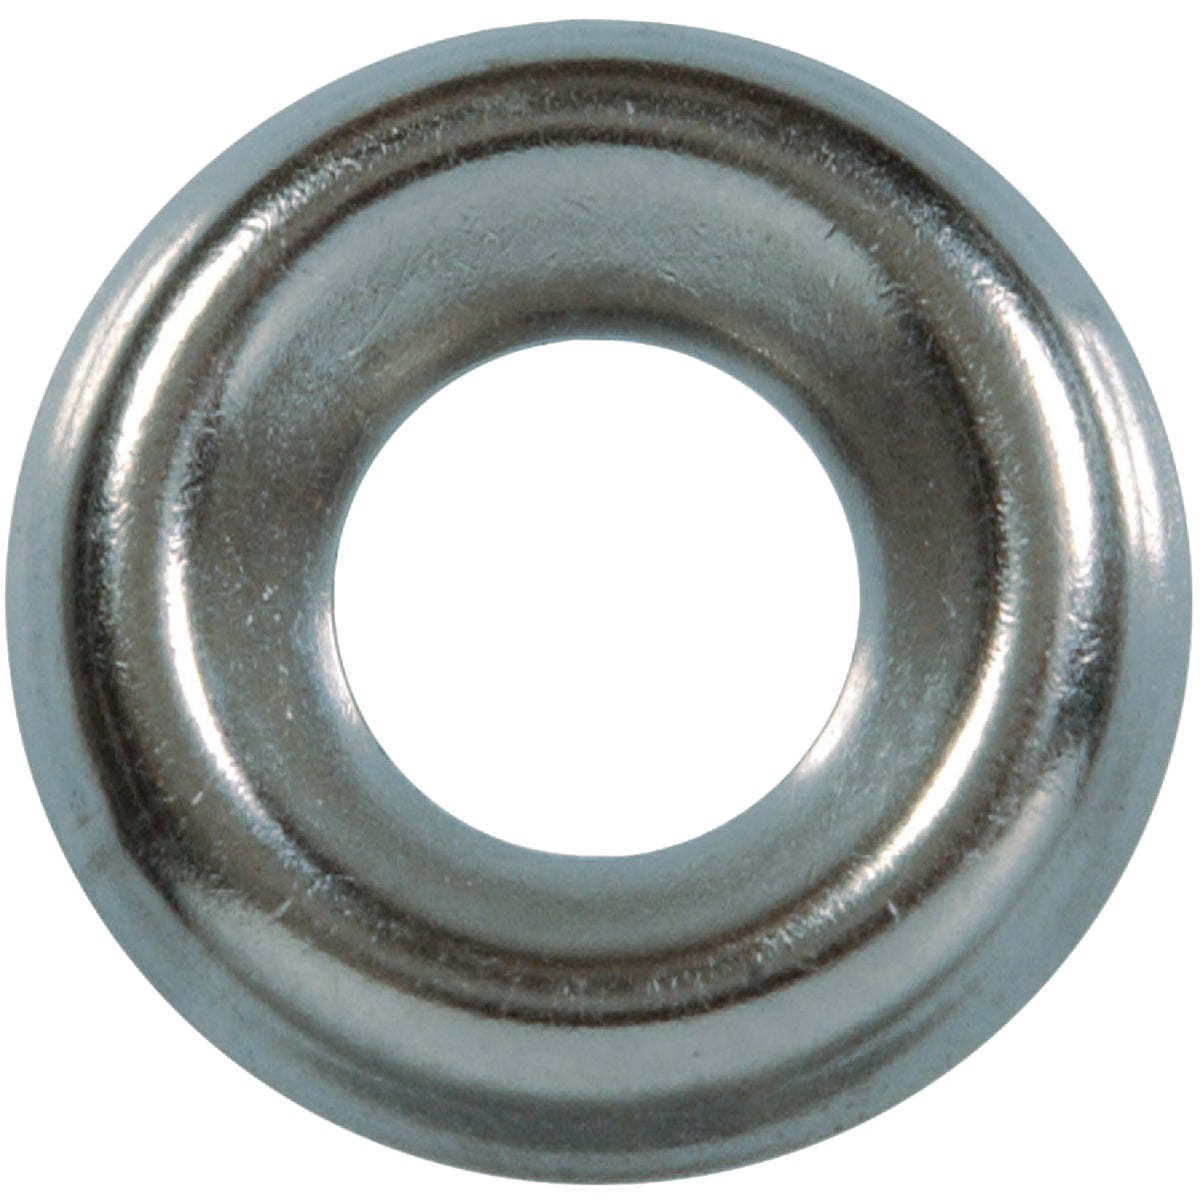 #8 NPS FINISH WASHER - 6673 by Hillman Fastener